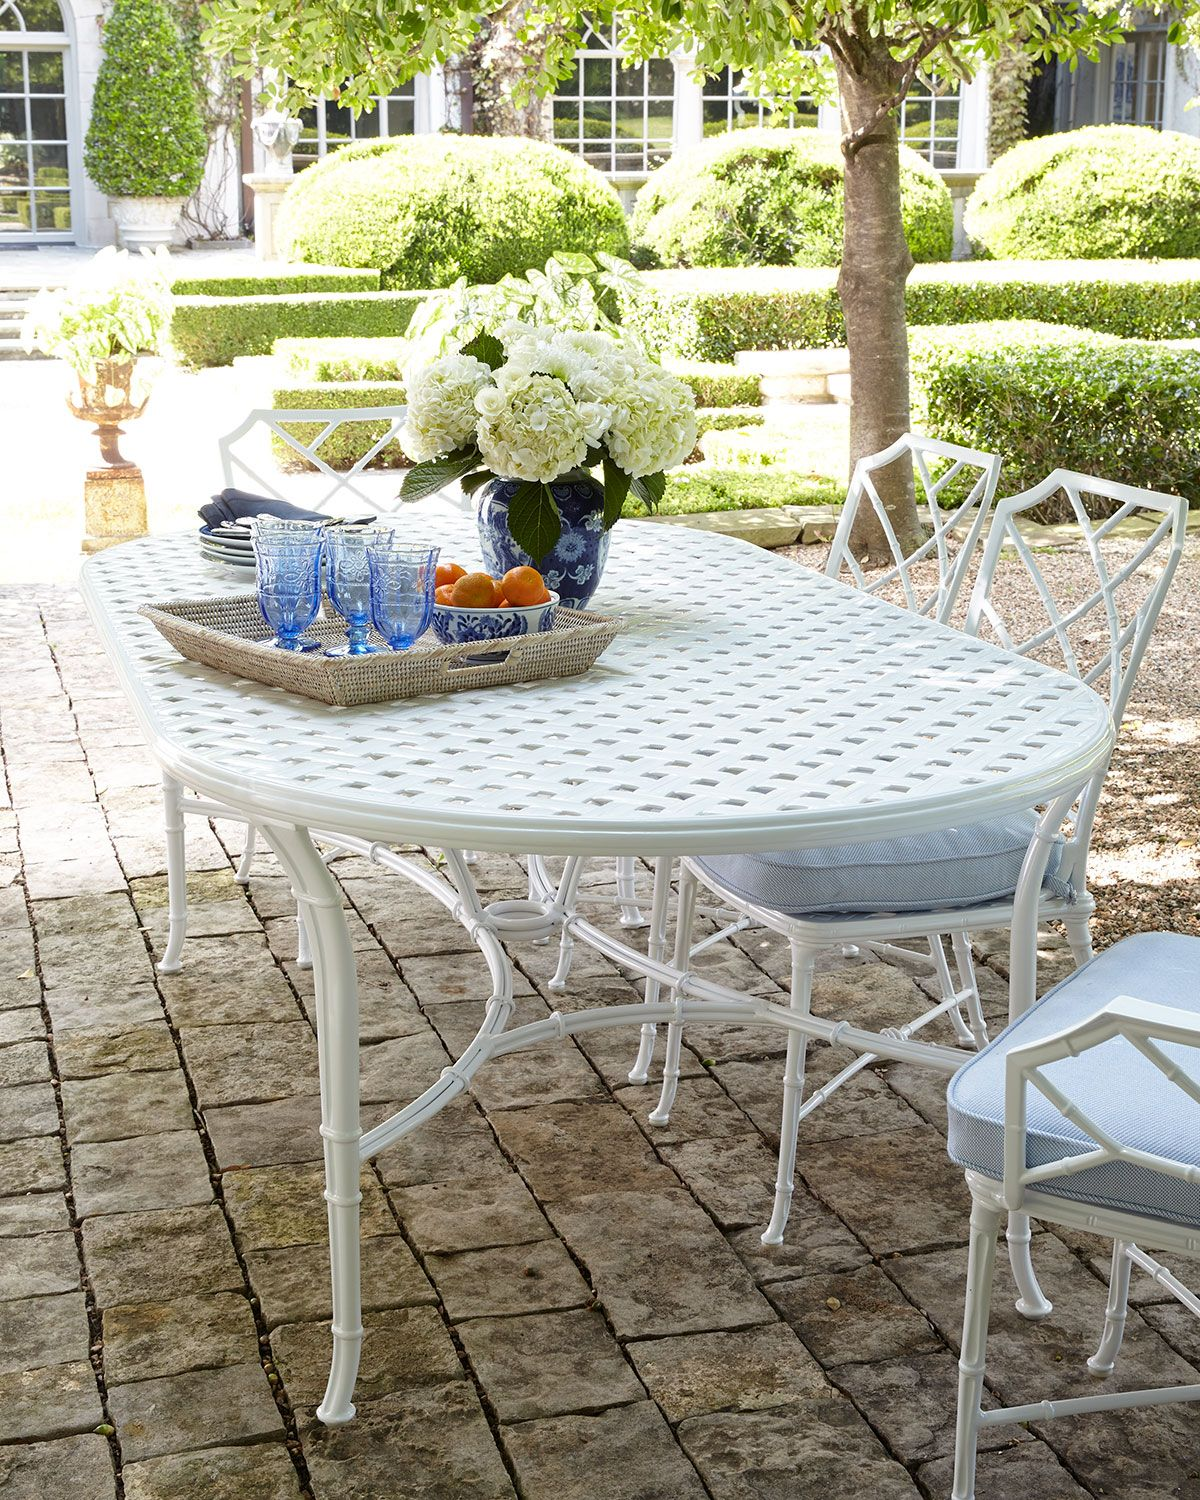 Admirable Calcutta Outdoor Dining Table In 2019 Horchow Round Caraccident5 Cool Chair Designs And Ideas Caraccident5Info